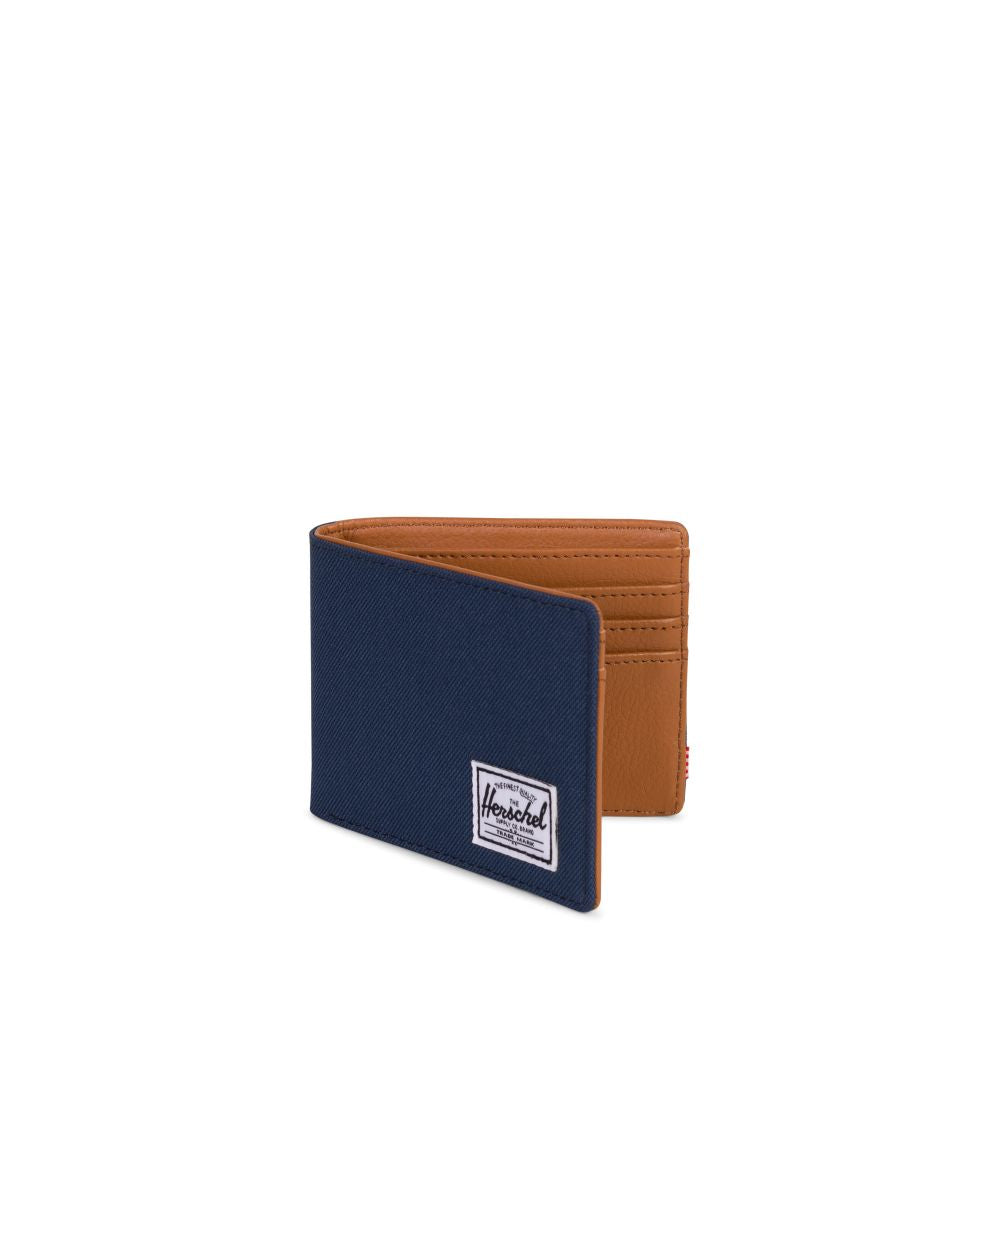 HERSCHEL WALLETS Default HANK WALLET - NAVY